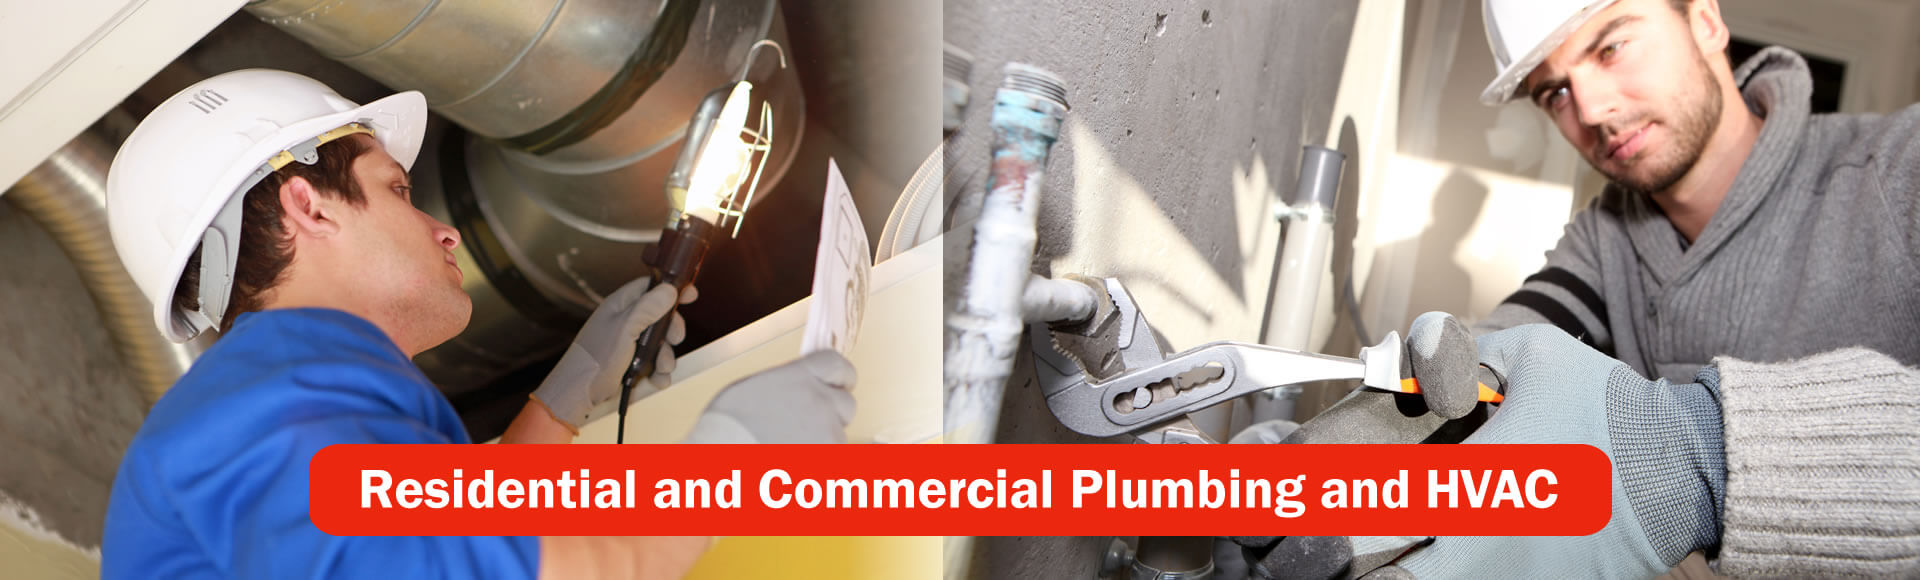 Residential and Commercial Plumbing and HVAC